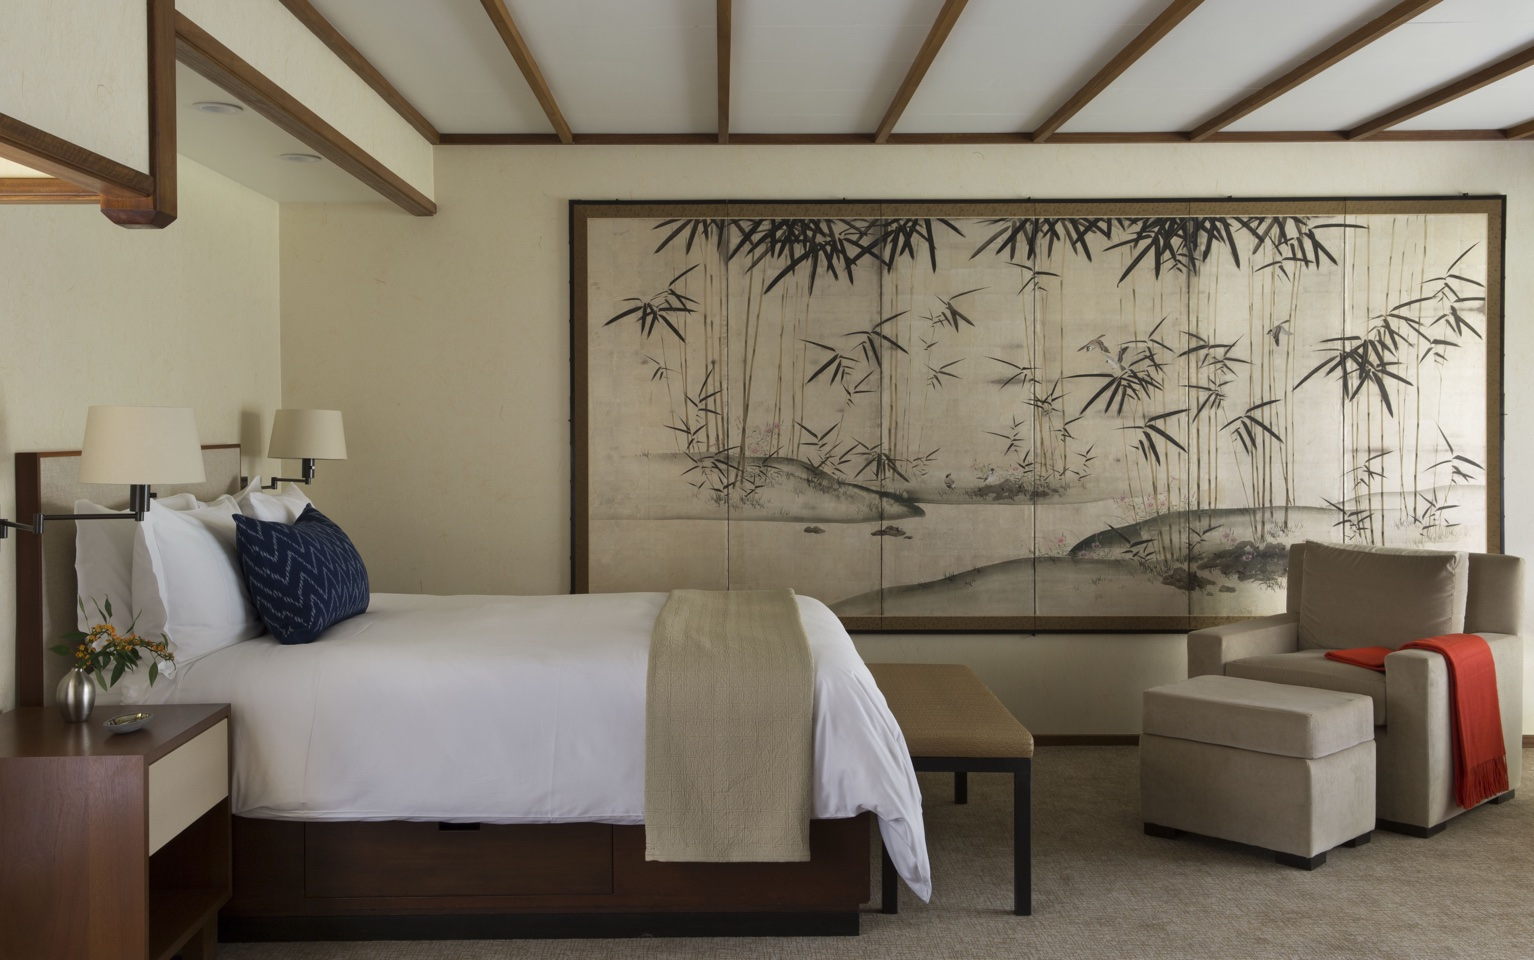 Guest Room 1 at the Golden Door Spa in San Marcos.  Interior design by Victoria Hagan